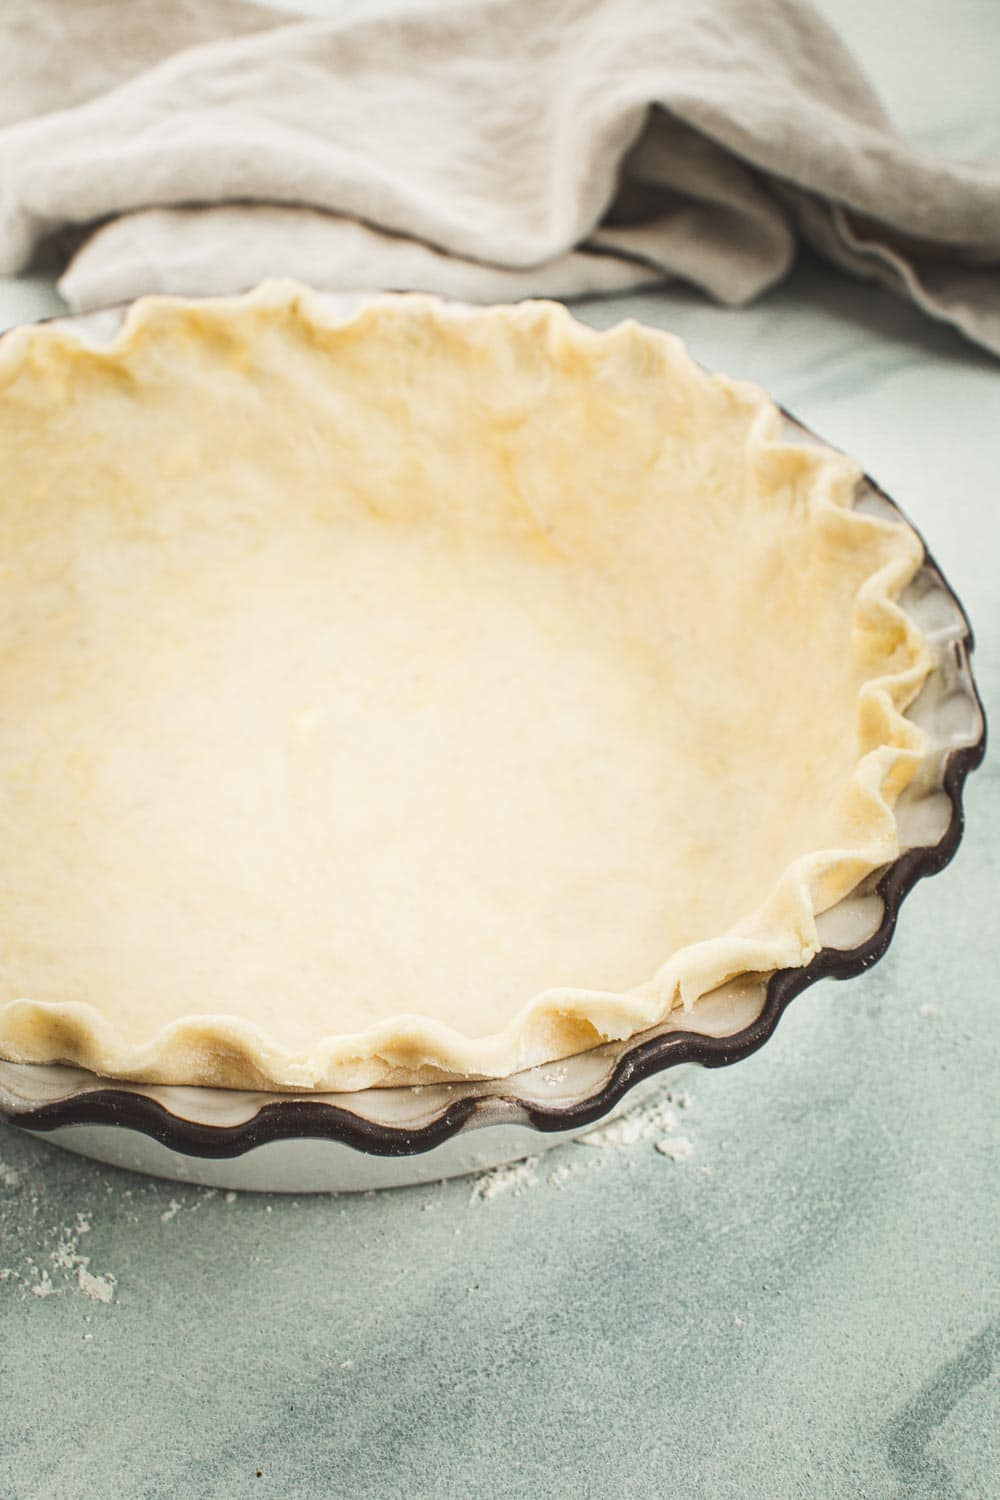 The Best Homemade Flaky Pie Crust Recipe With Shortening And Butter Aimee Mars